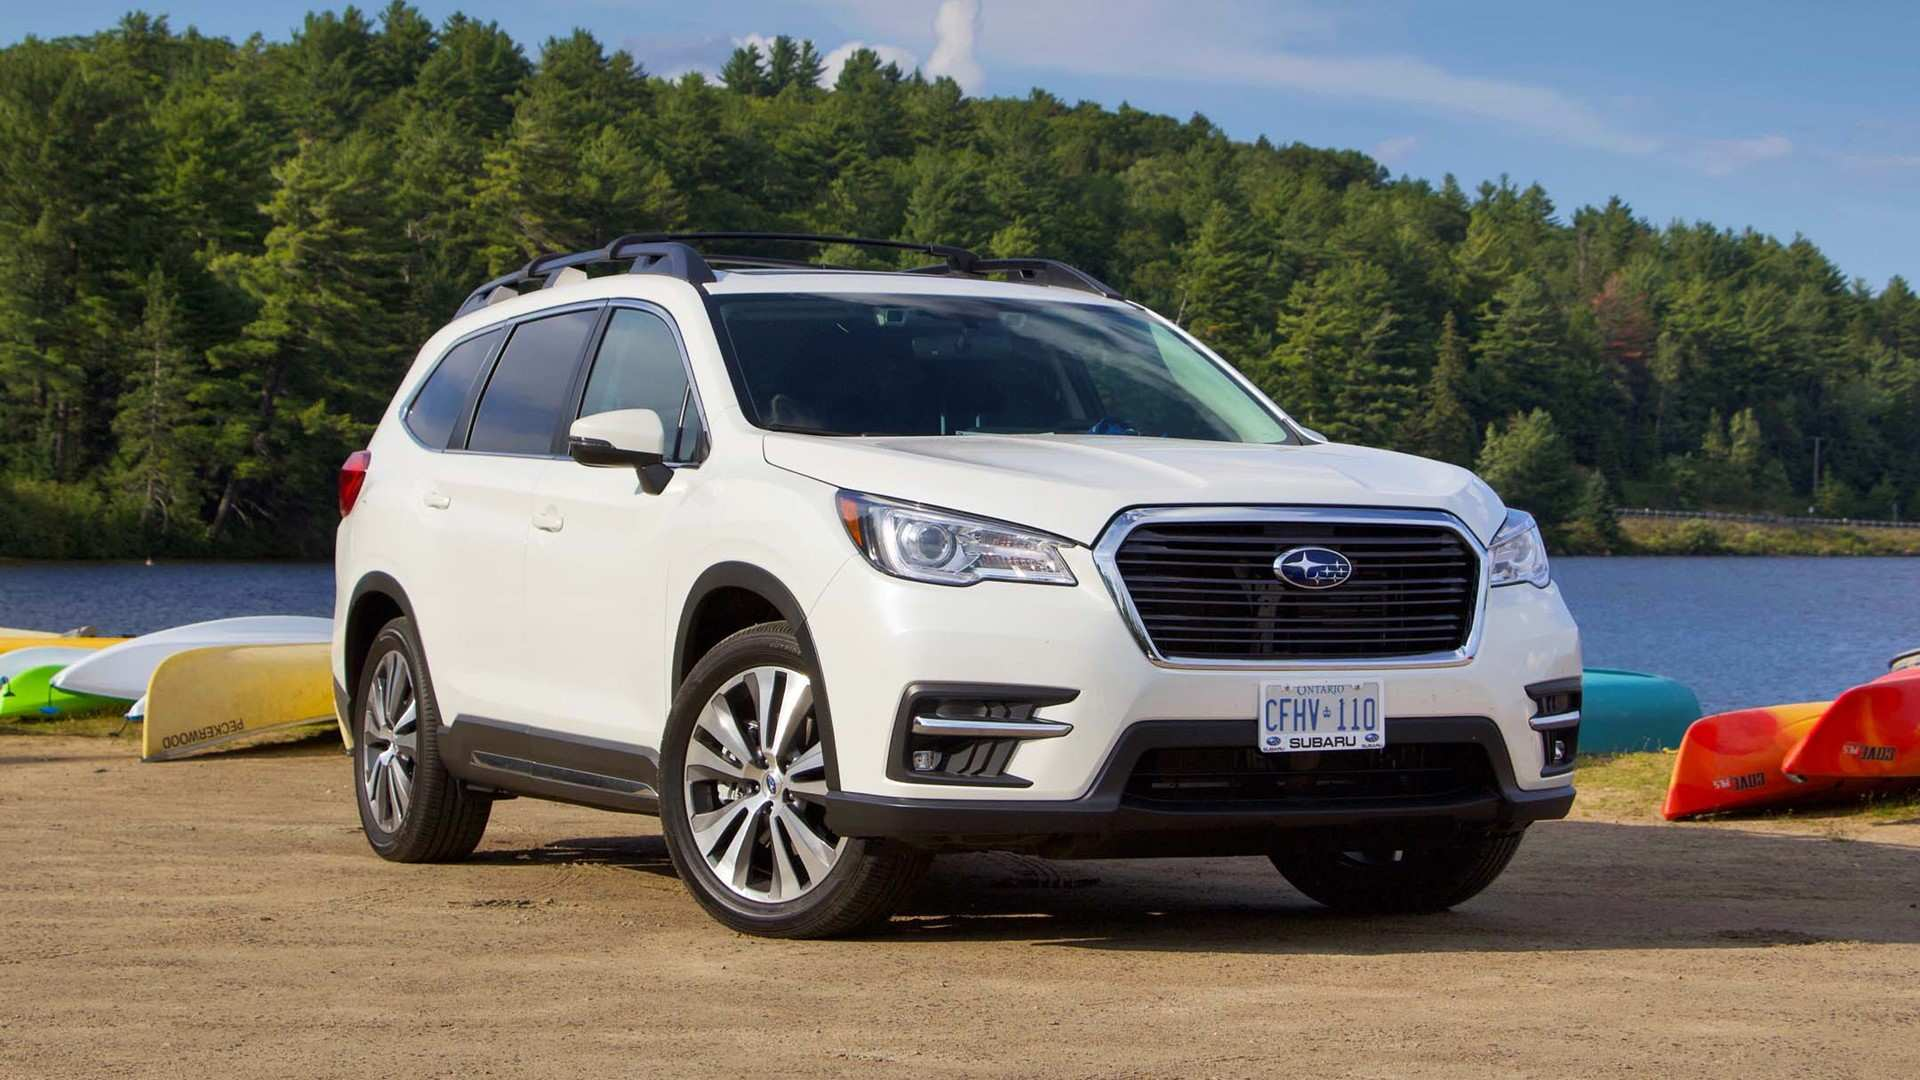 61 All New 2019 Subaru Ascent News Research New